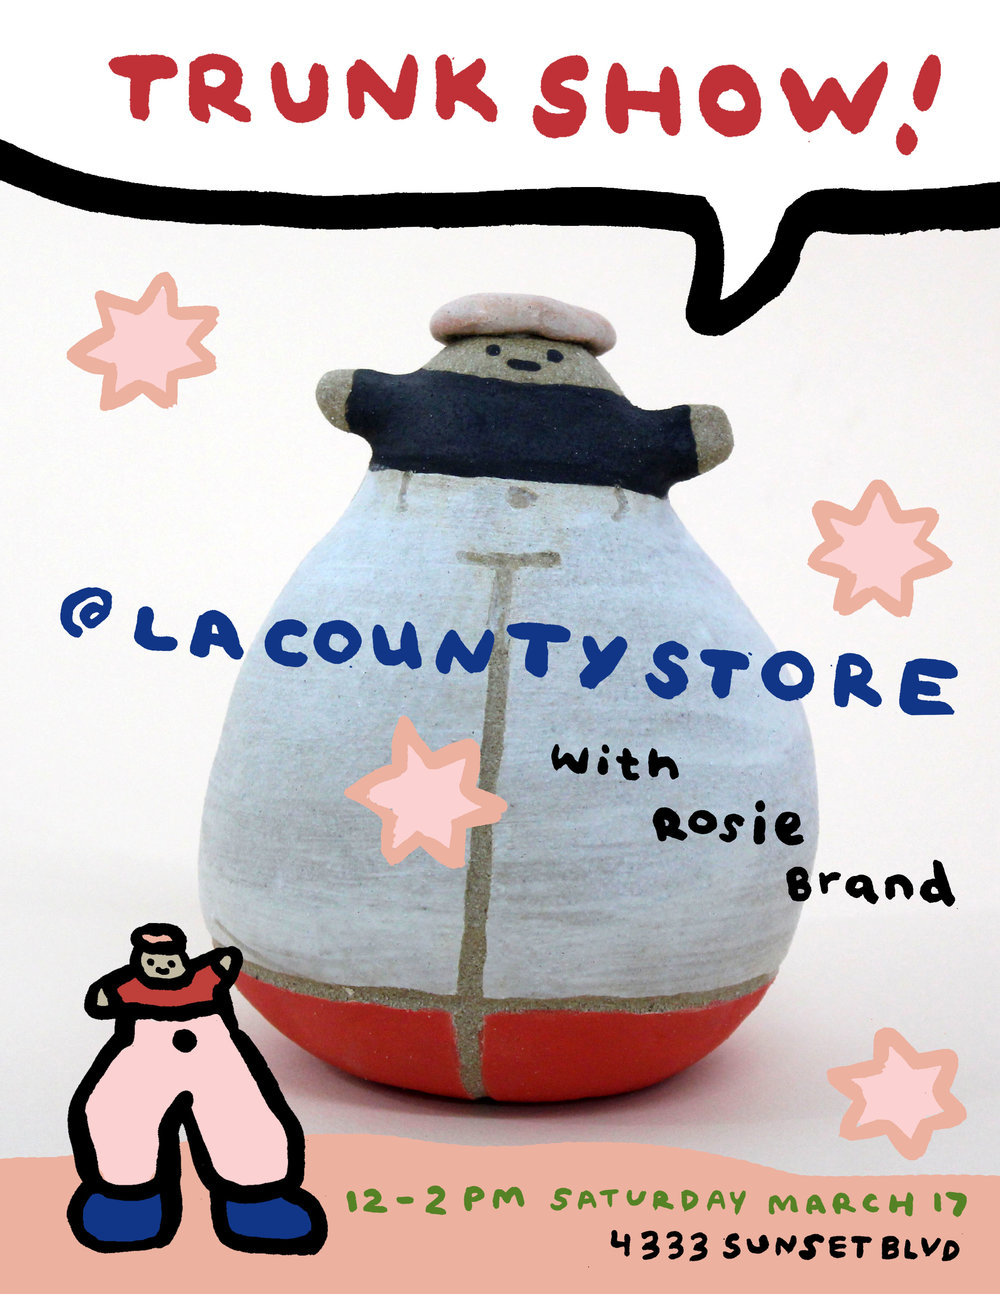 la country store flyer big.jpg